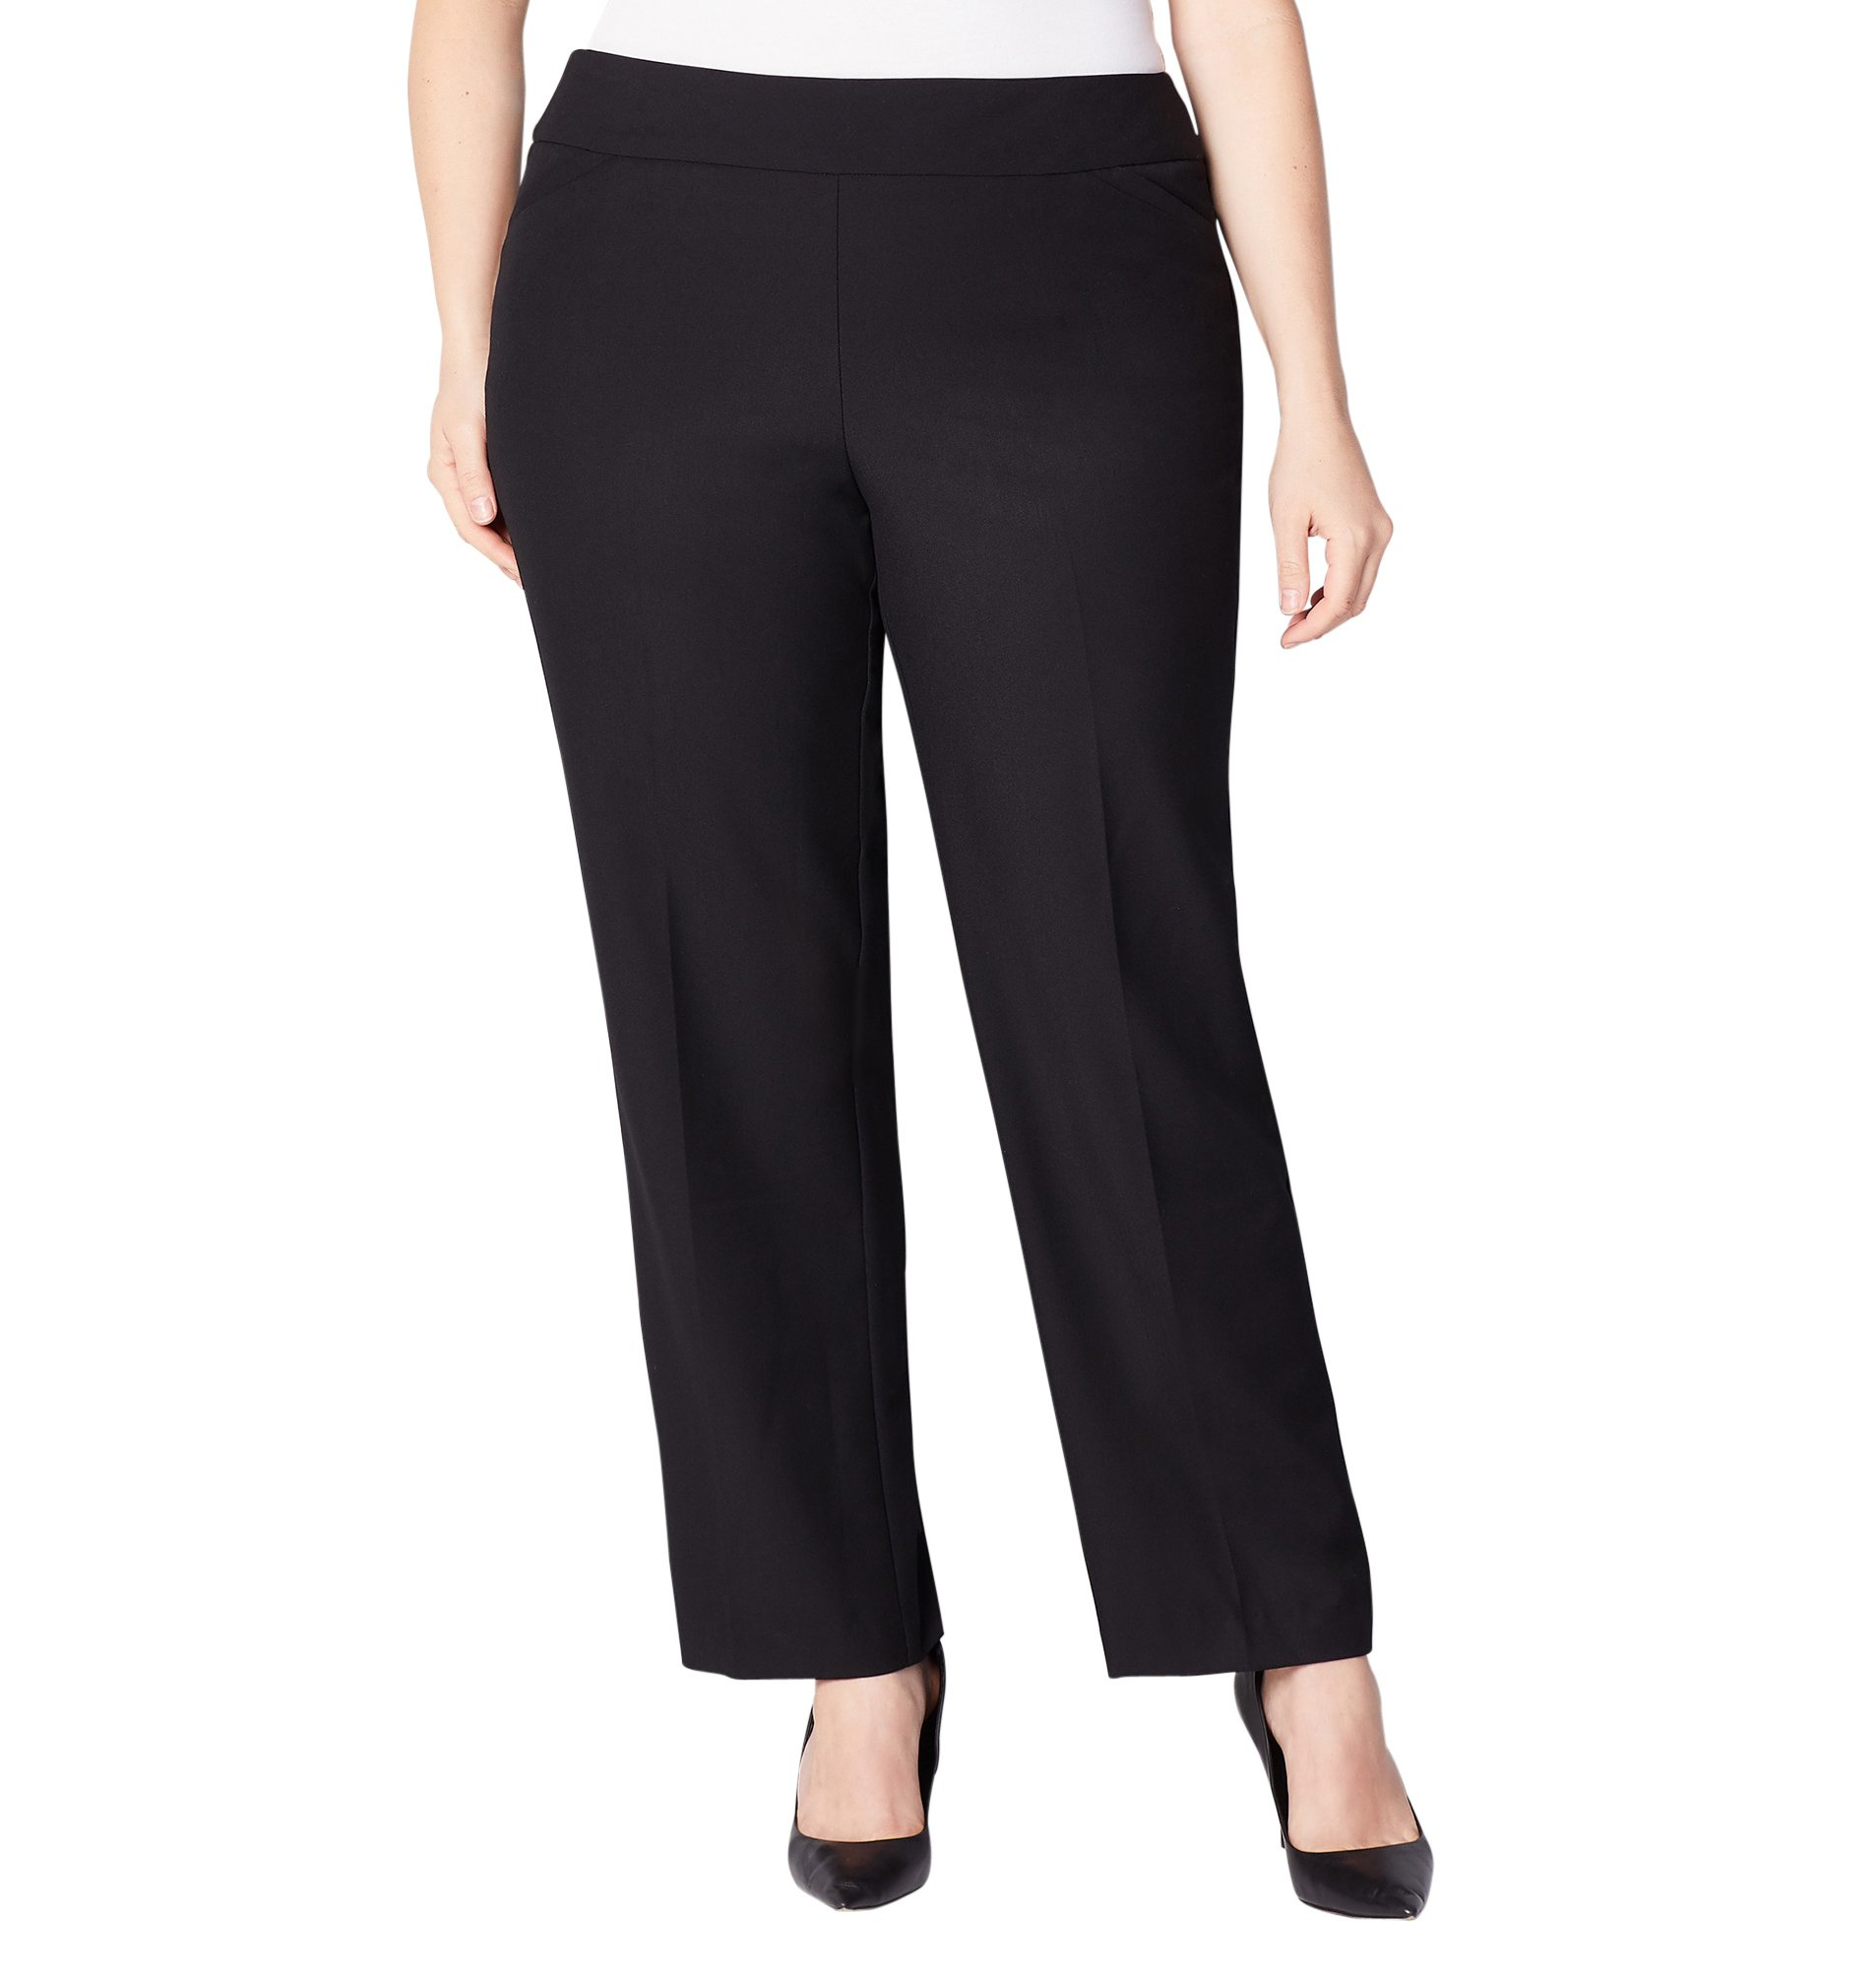 Avenue Women's Luxe Slimming Pull-On Pant with Tummy Control, 32 Black